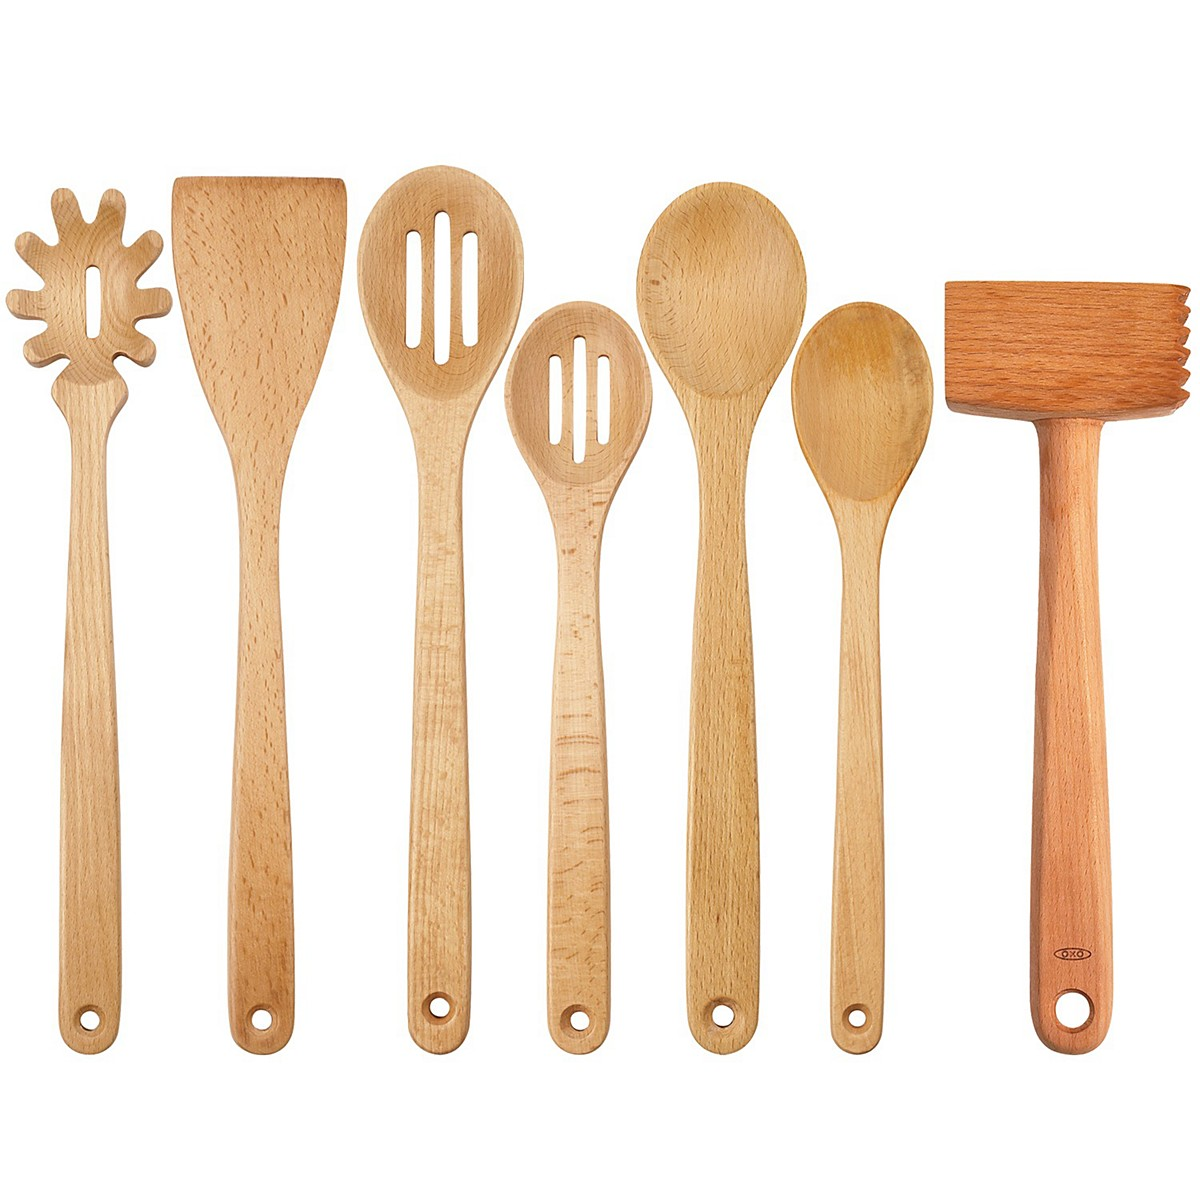 Kitchen the kids in 201 for Wooden kitchen spoons